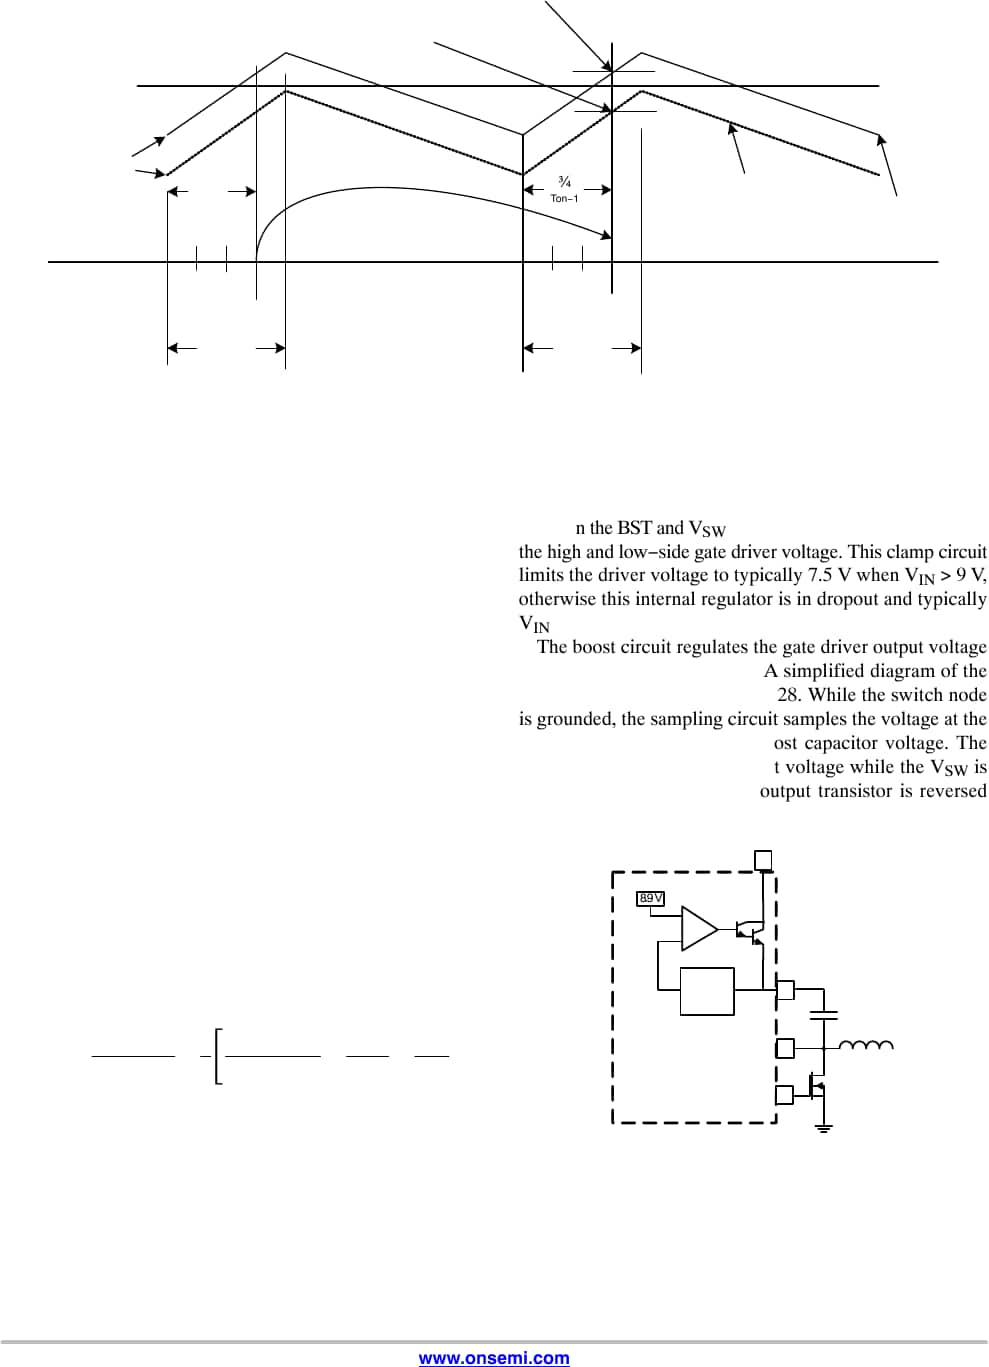 240 to 24 volt transformer wiring diagram dish tv antenna dry type database 3 phase multi tap connection diagrams